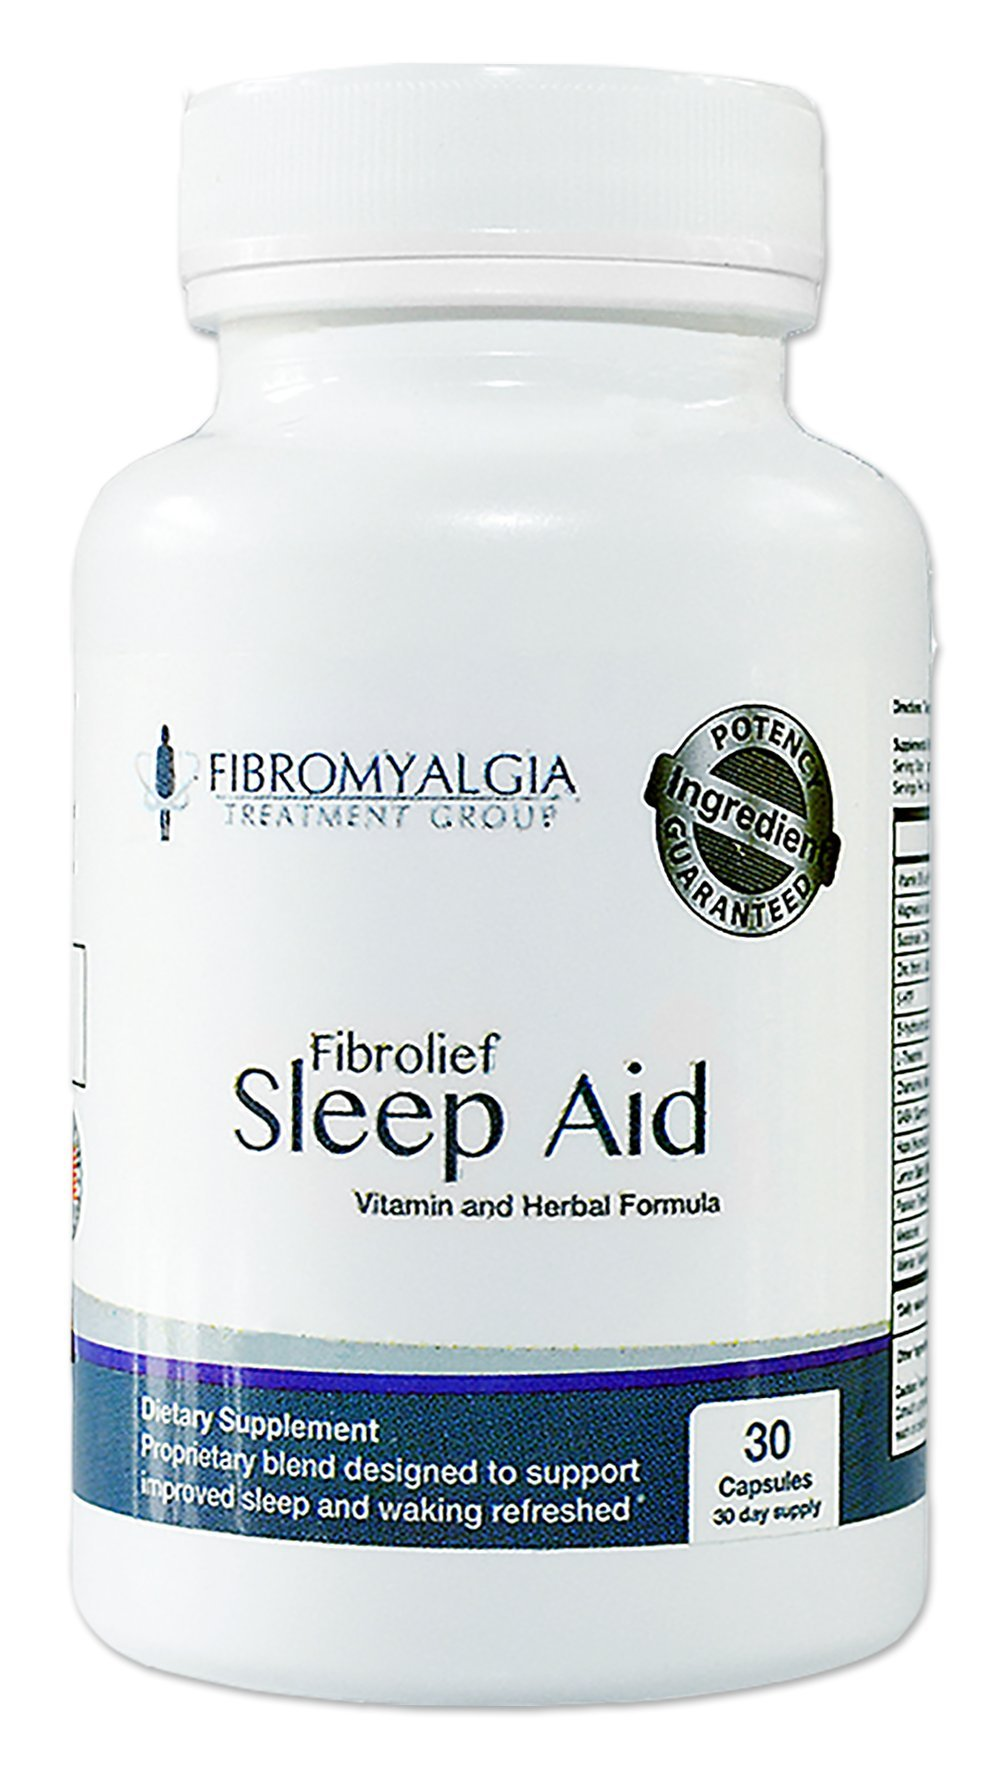 All-Natural Fibrolief Sleep Aid - Works Fast - Safe for Fibromyalgia - No Grogginess and Non-Habit Forming - Alternative Sleep Aid Supplement - 30 Day Supply